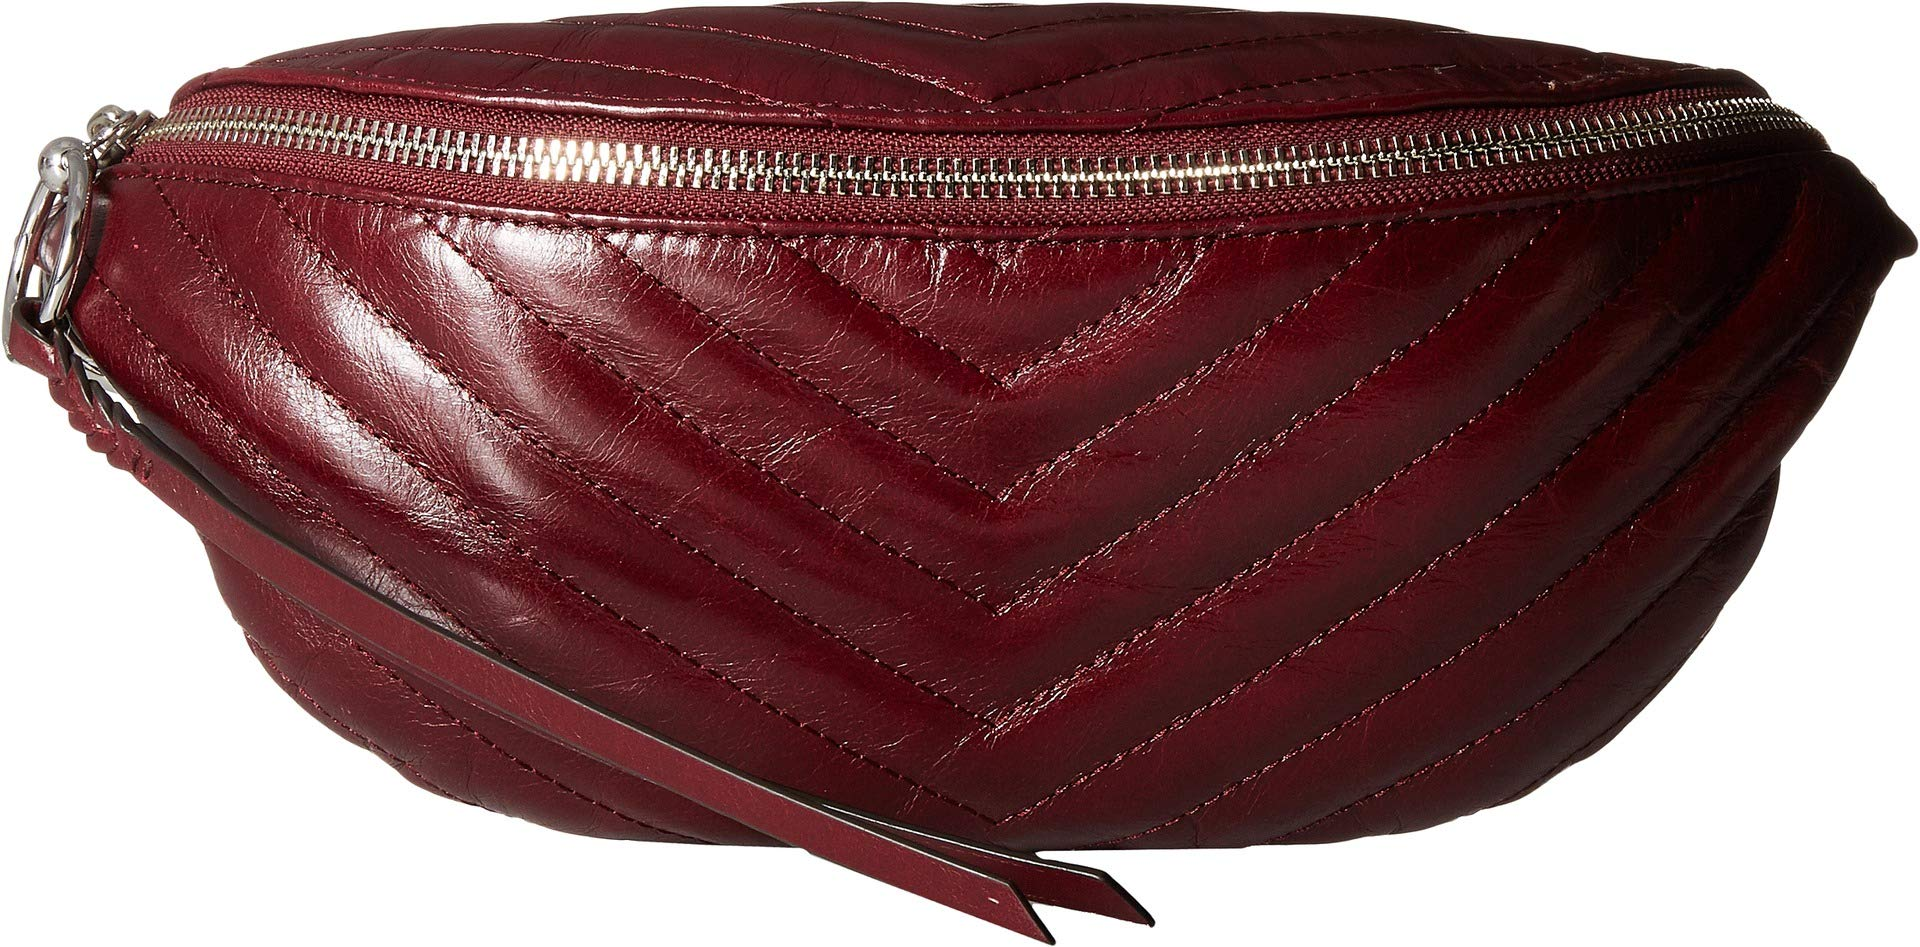 Rebecca Minkoff Women's Edie Quilted Belt Bag, Bordeaux, Red, Purple, One Size